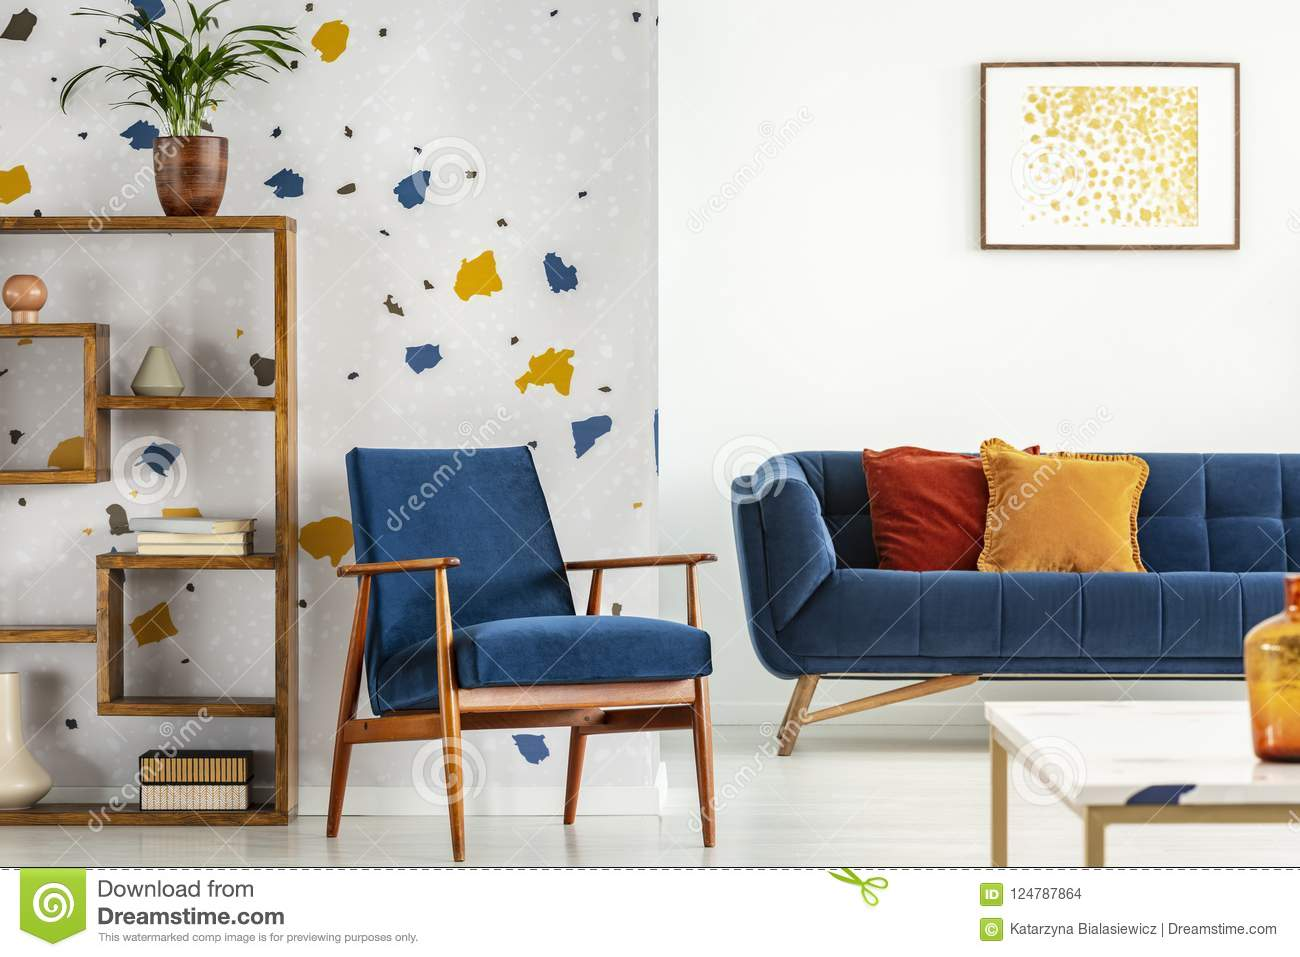 Armchair And Couch With Pillows In Blue And Orange Living Room Interior With Poster And Plant Real Photo Stock Photo Image Of Home Living 124787864